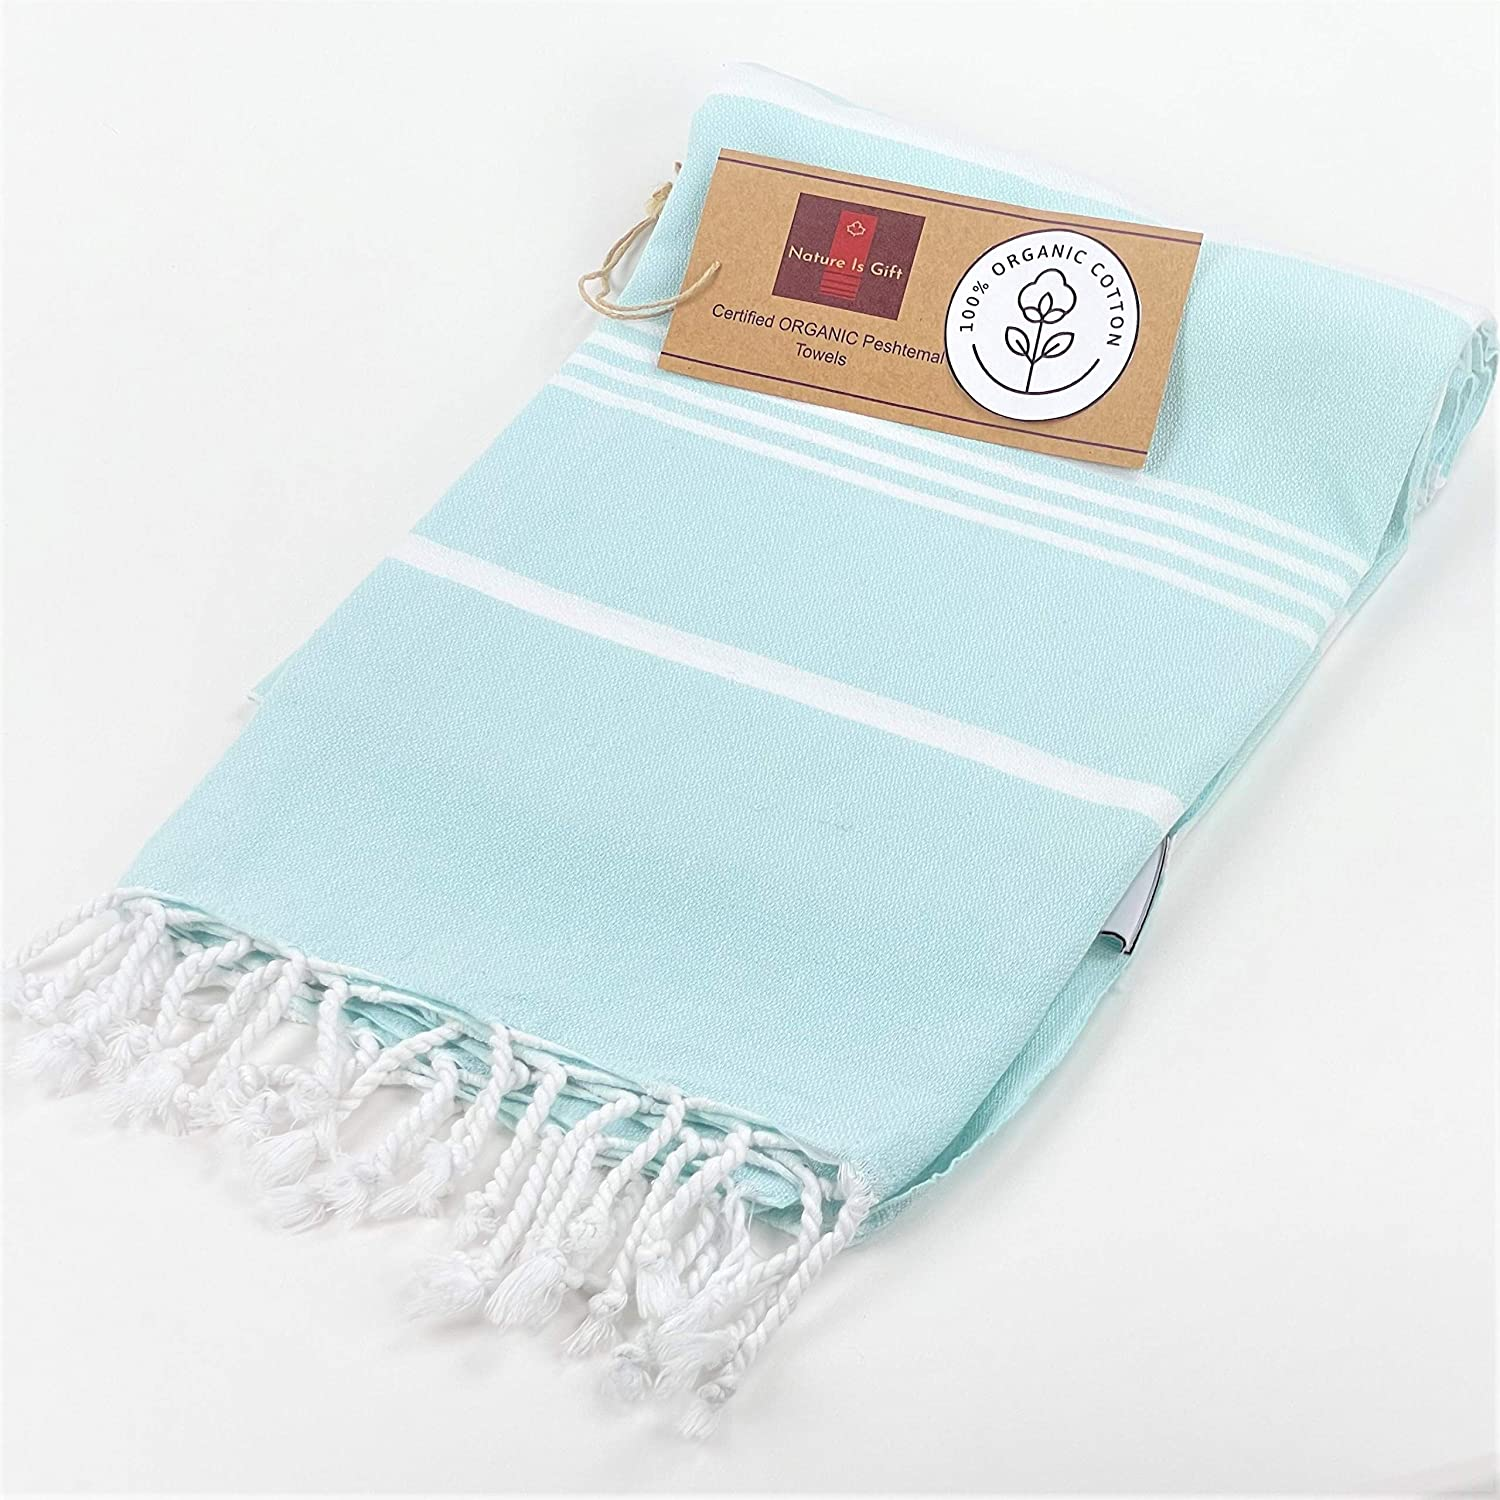 gifts-for-travelers-towel